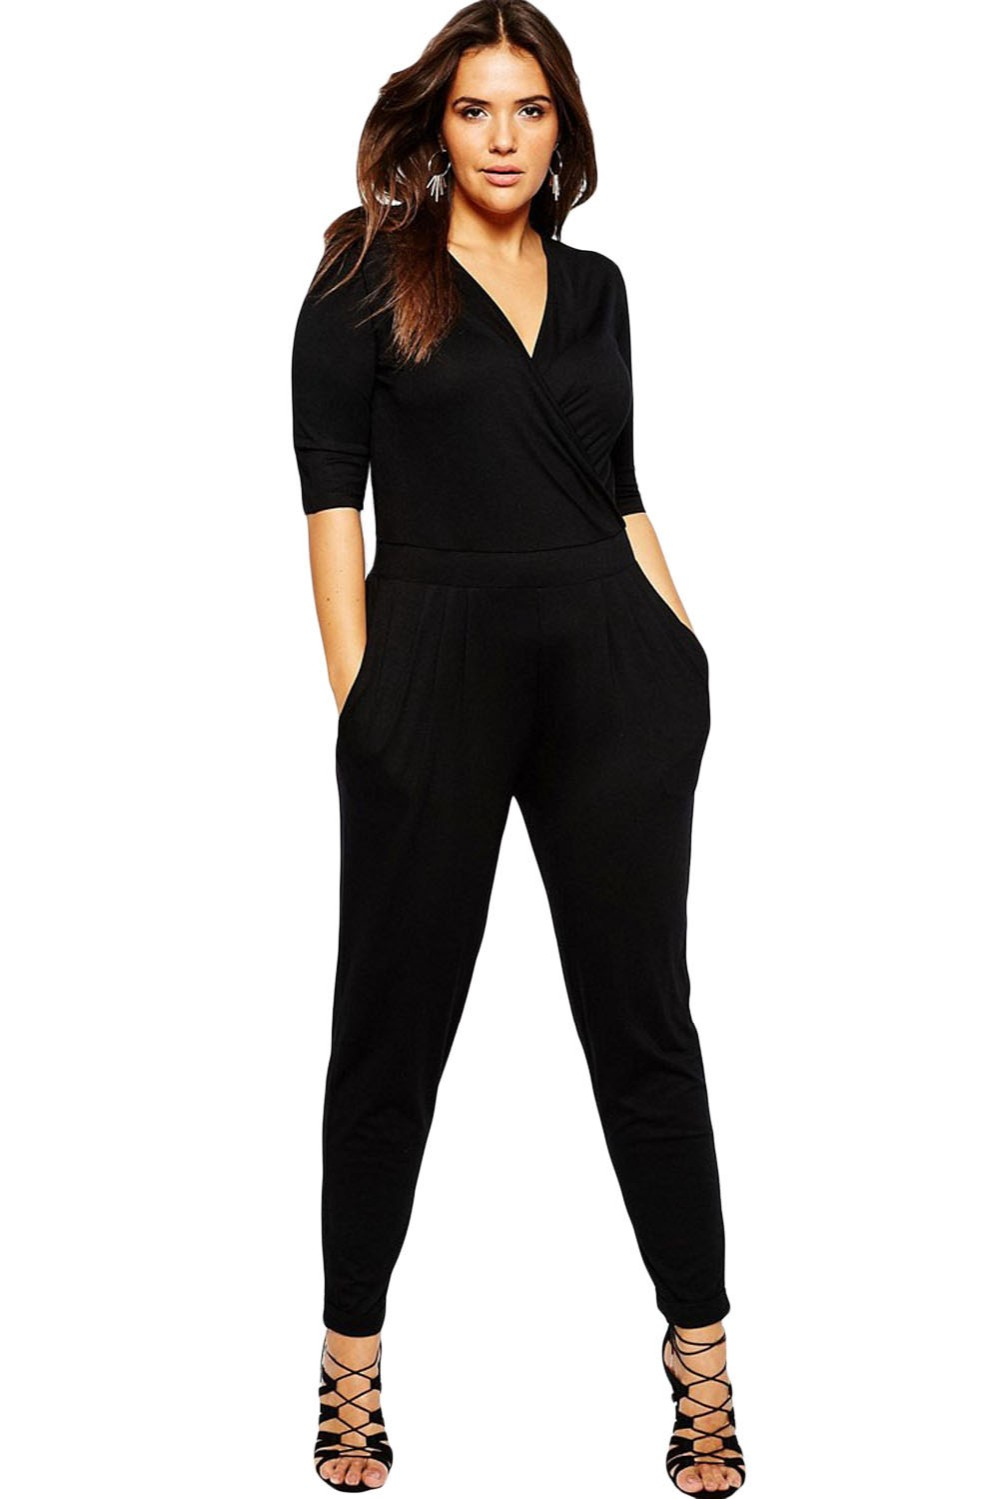 Black-Plus-Size-Wrap-V-Neck-Jumpsuit-LC64206-2-1